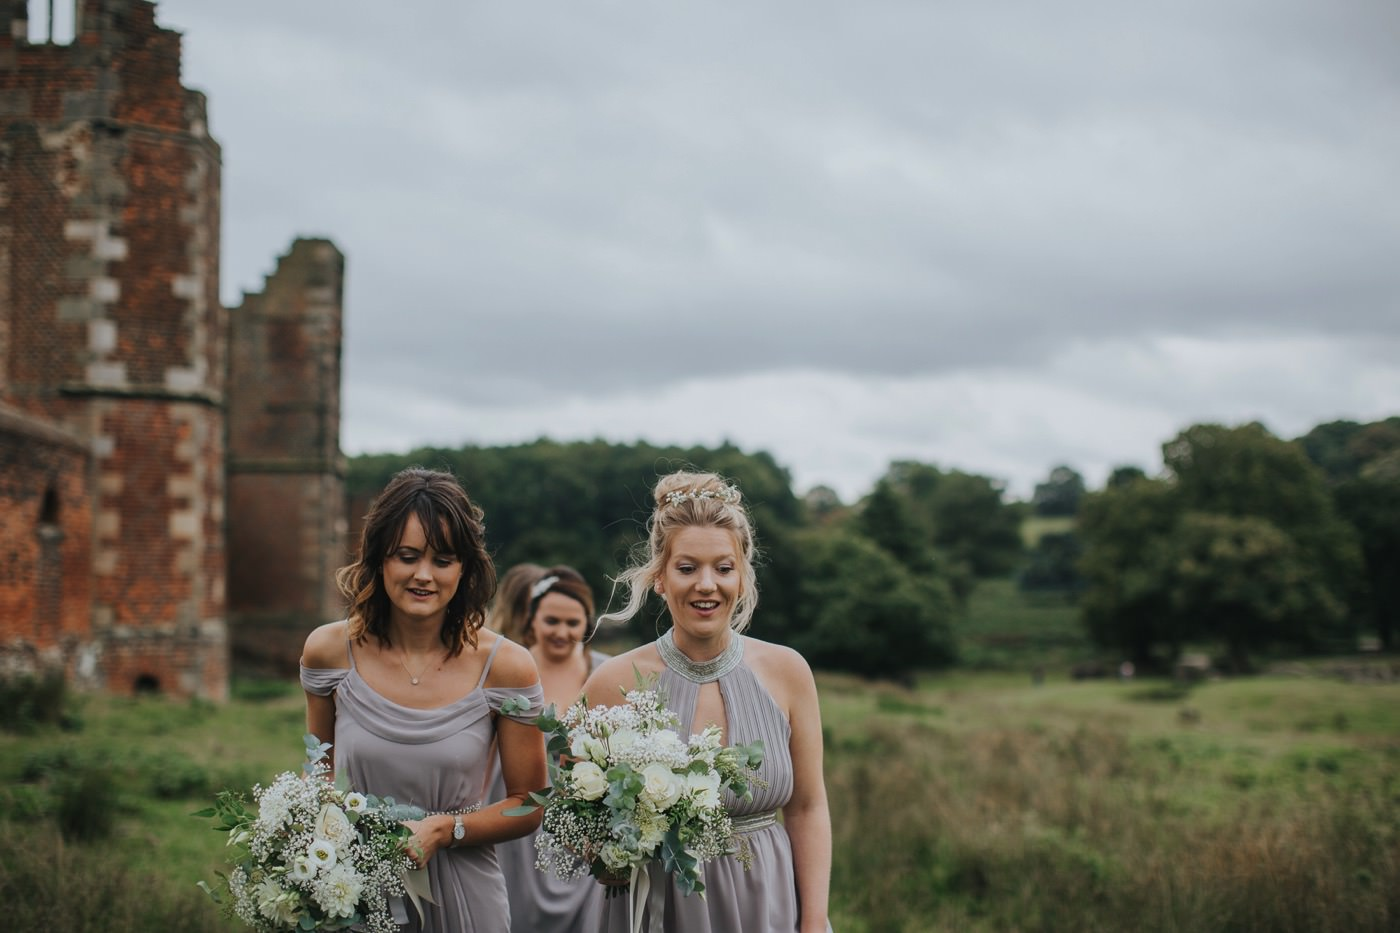 Steve & Tiffany | Bradgate Park wedding 46